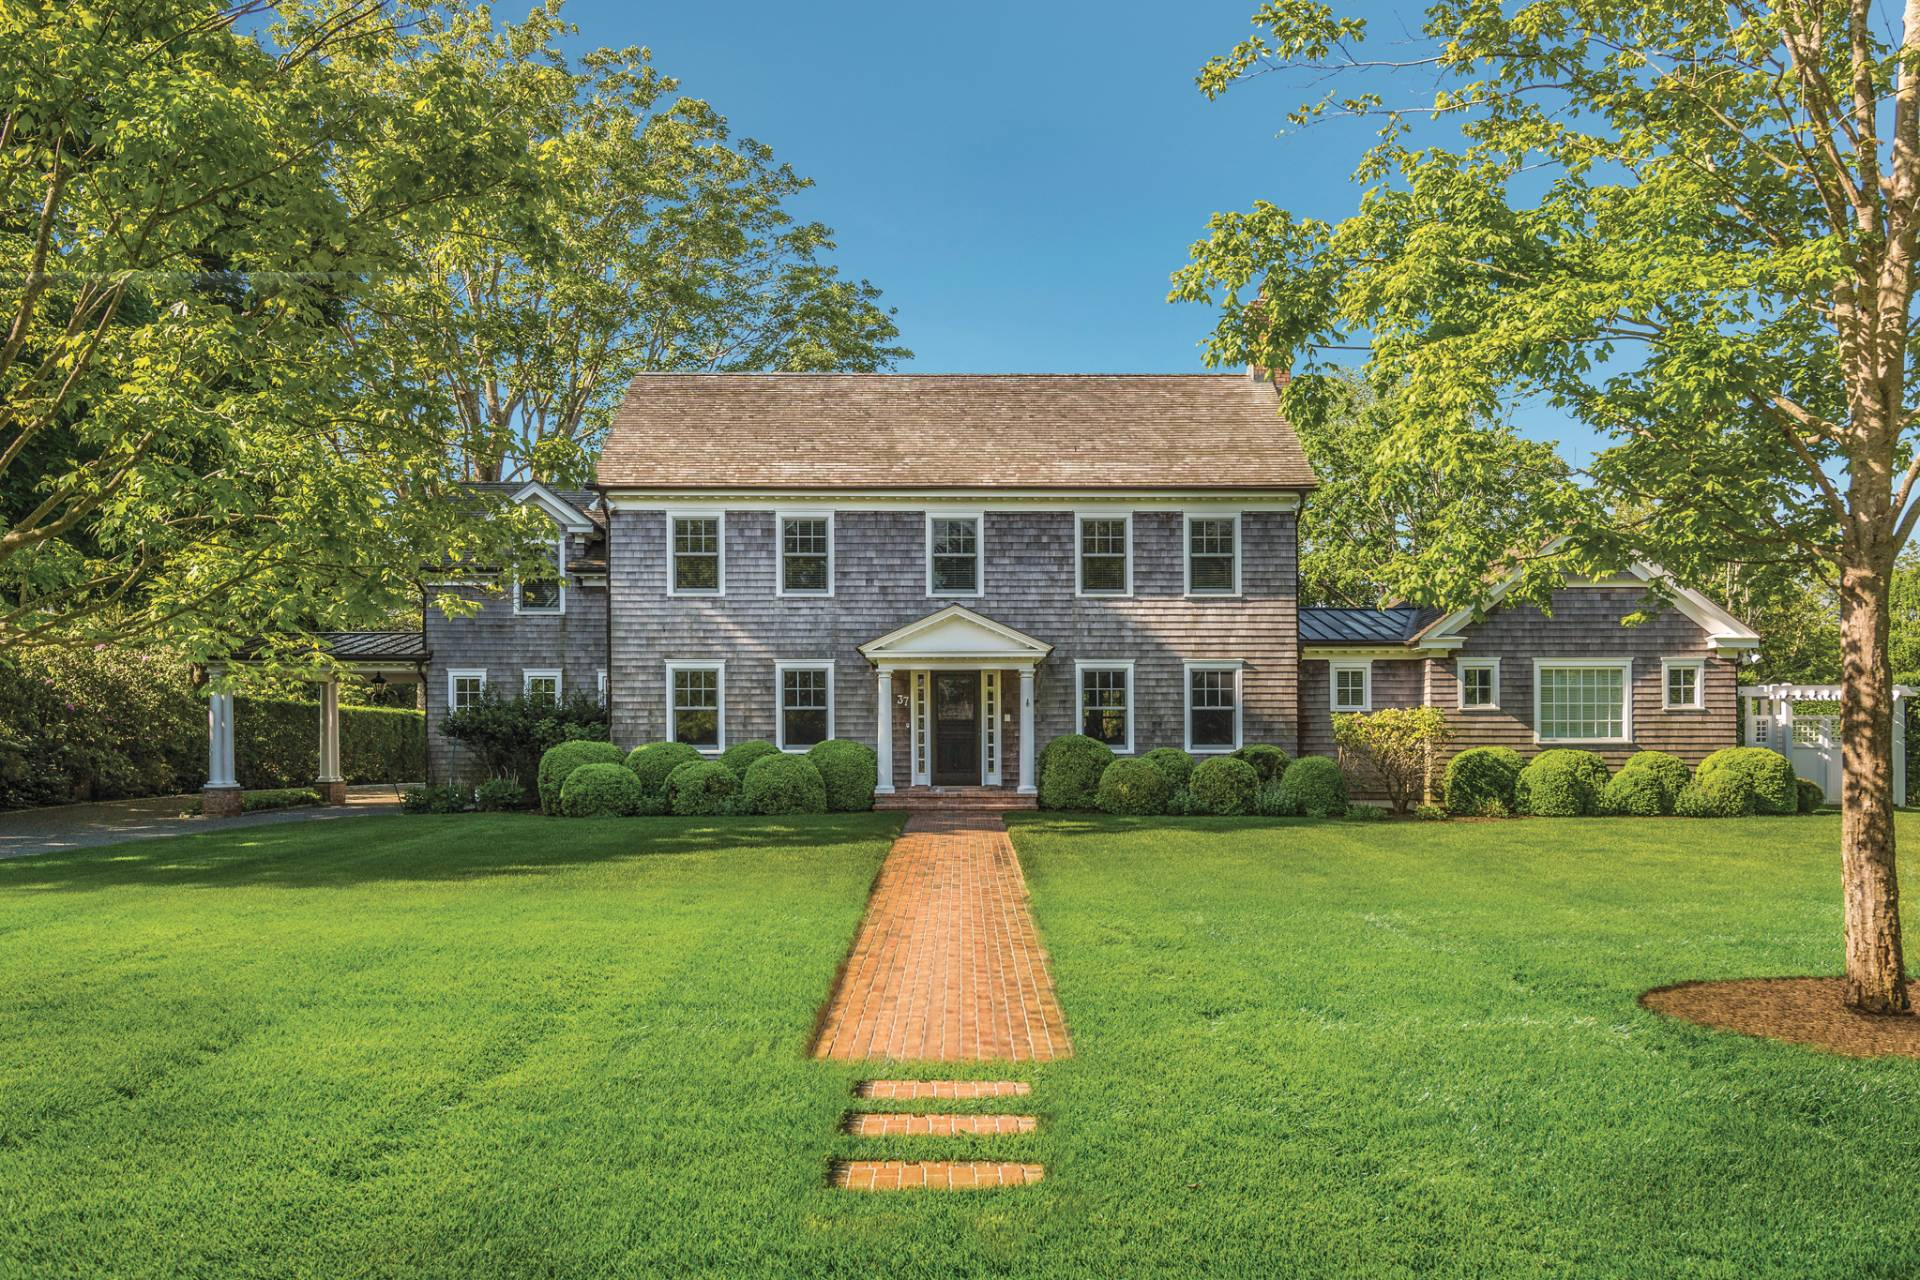 Single Family Home for Sale at East Hampton Village 37 Davids Lane, East Hampton, New York